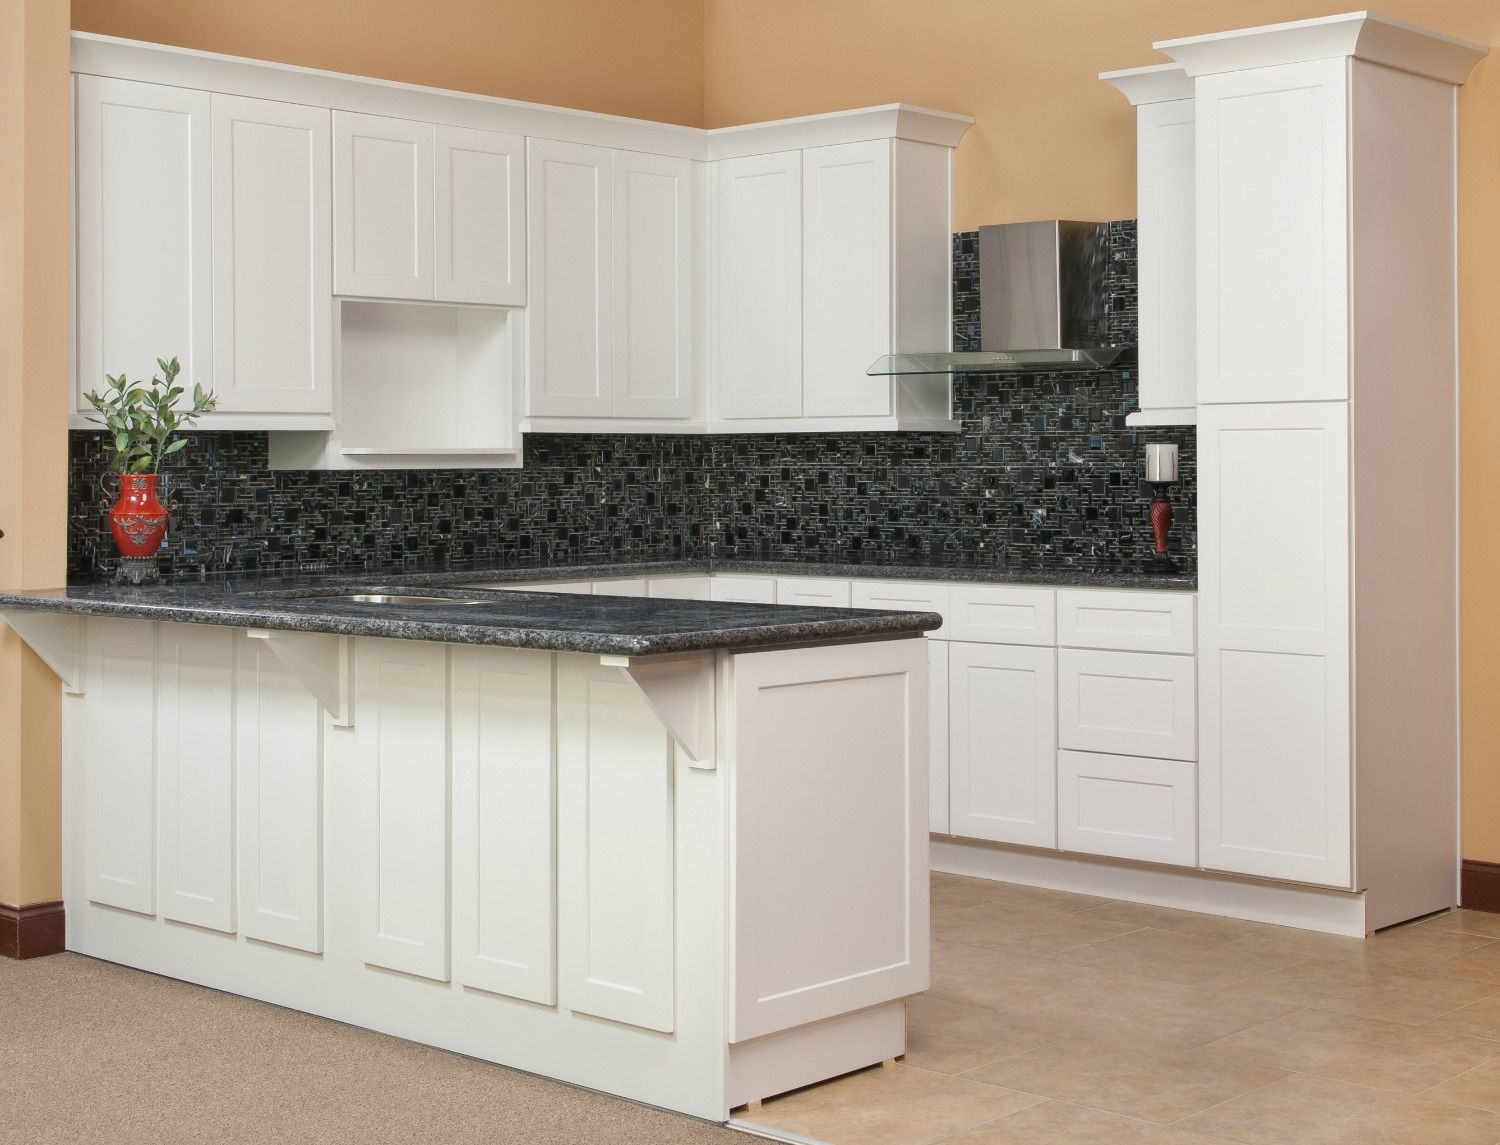 Kitchen of the day brilliant white shaker rta kitchen for Shaker style kitchen units